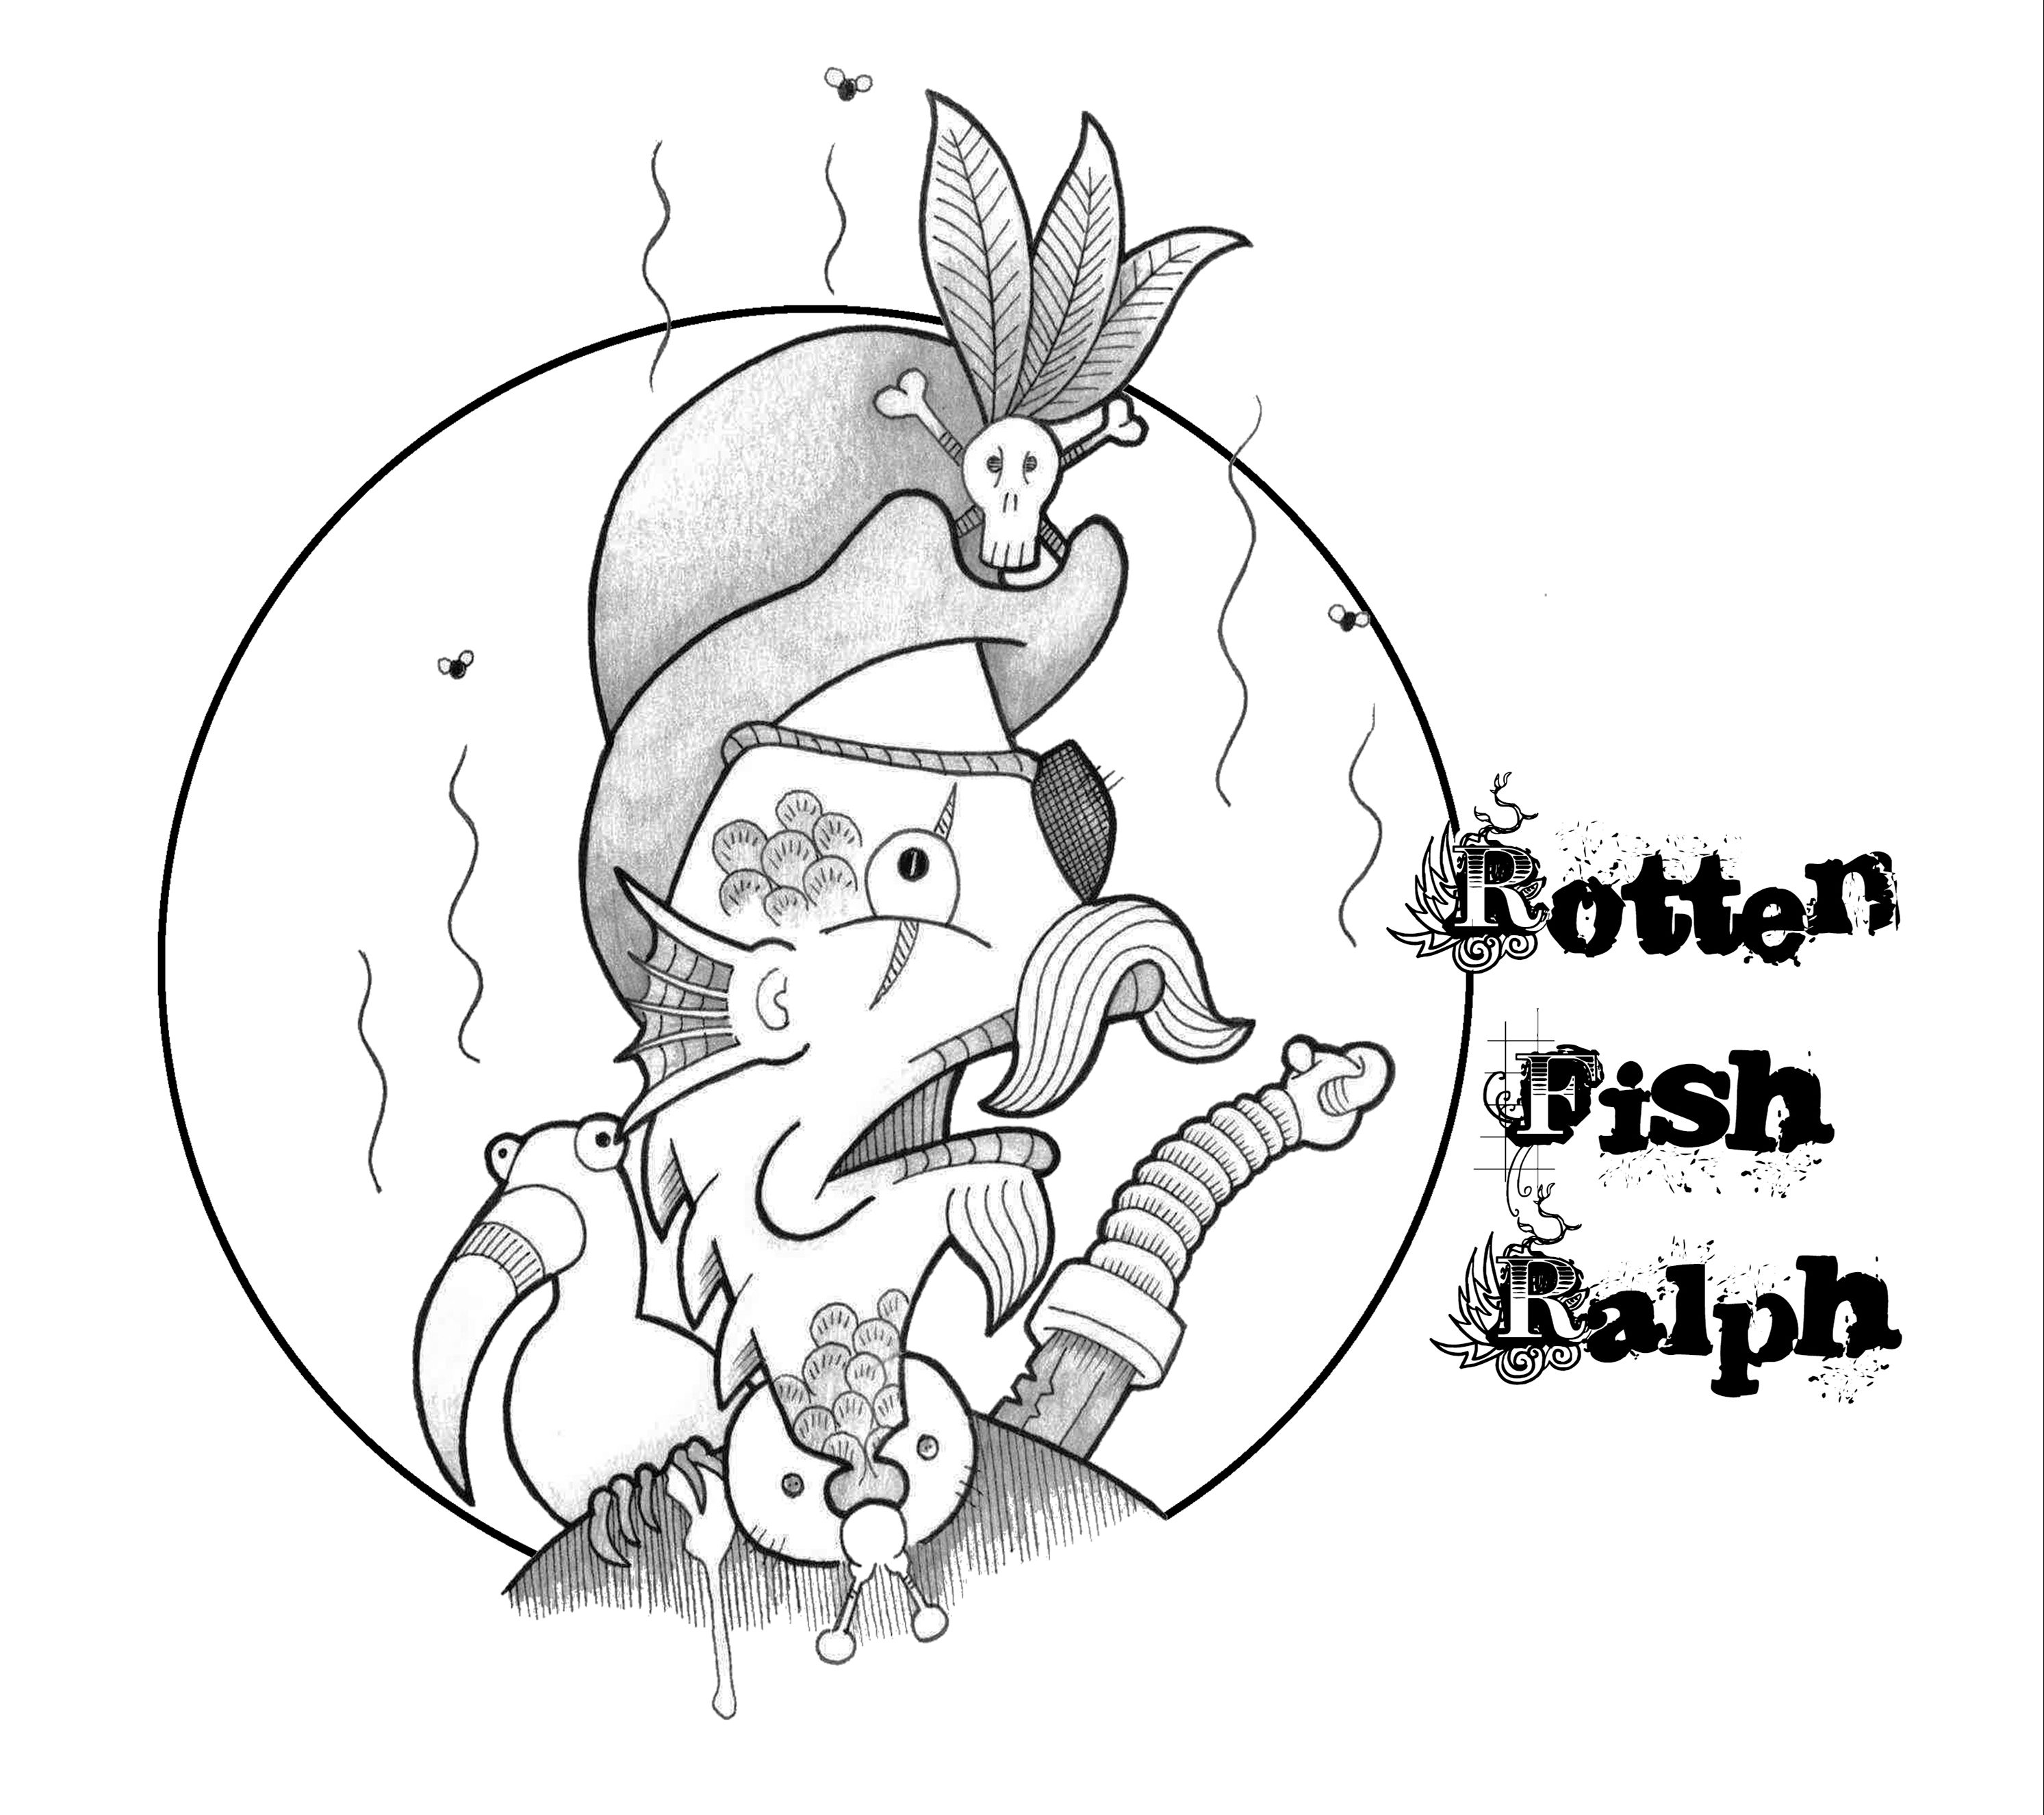 """Once Upon a Crime - Character Design (Rotten Fish Ralph) Idea for the fish person pirate captain, was thinking of possibly doing a parrot fish instead of a bird. """"I hate these damn landlubbers!""""  #AdiRileyArtist #OnceUponaCrime #art🎨 #illustration #drawing #pendrawing #inkdrawing #inkart #penandink #pencil #sketch #penart #colour #photoshop #drawings #creaturedesign  #monster #zombie #undertaker #character #characterdesign #detailed #original #detective #fantasy #novel #artdesign"""